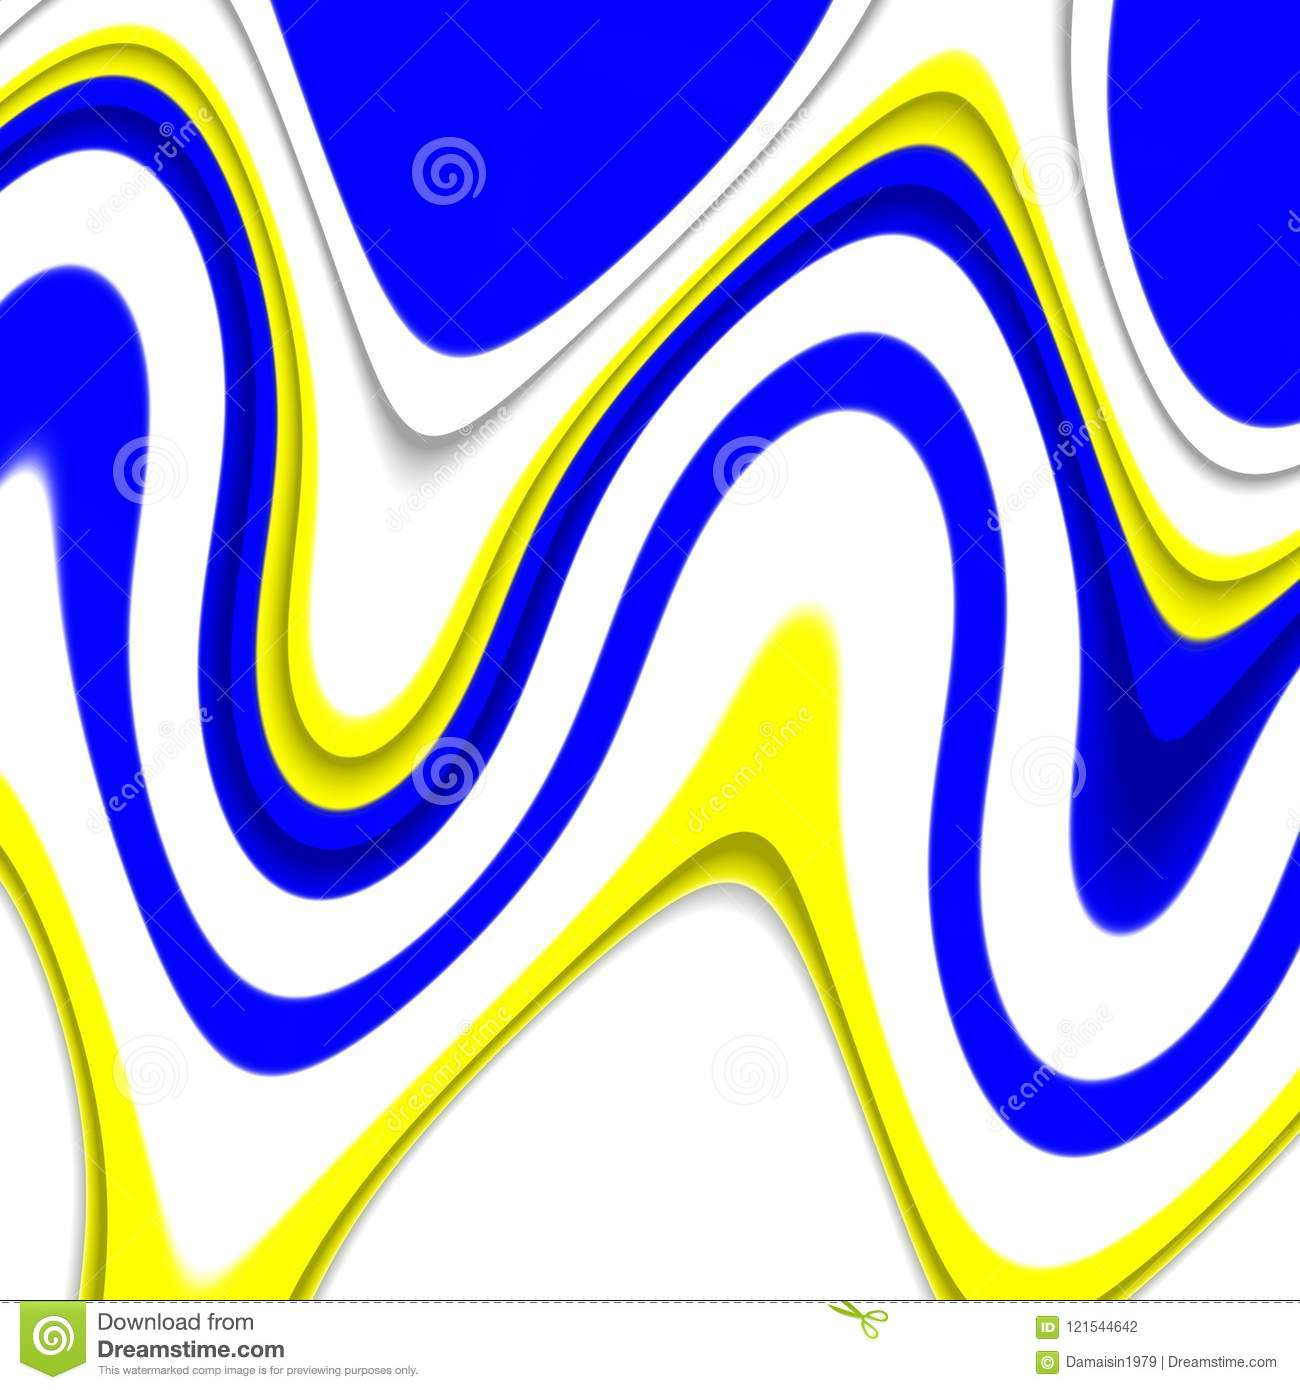 Waves Lines Blue Yellow White Background Forms And Fluid